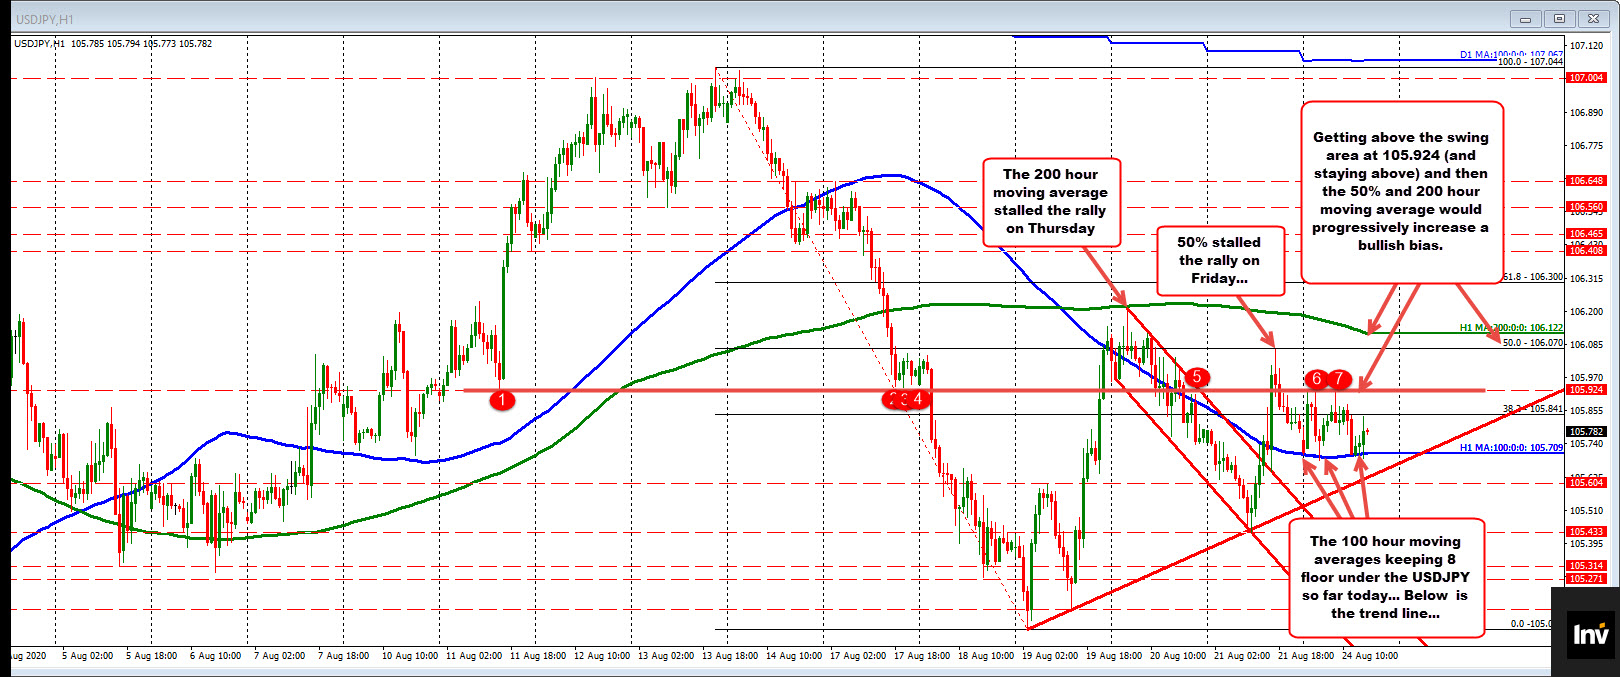 Photo of USDJPY Story Continues With Buyers Pressing Against 100 Hour MA